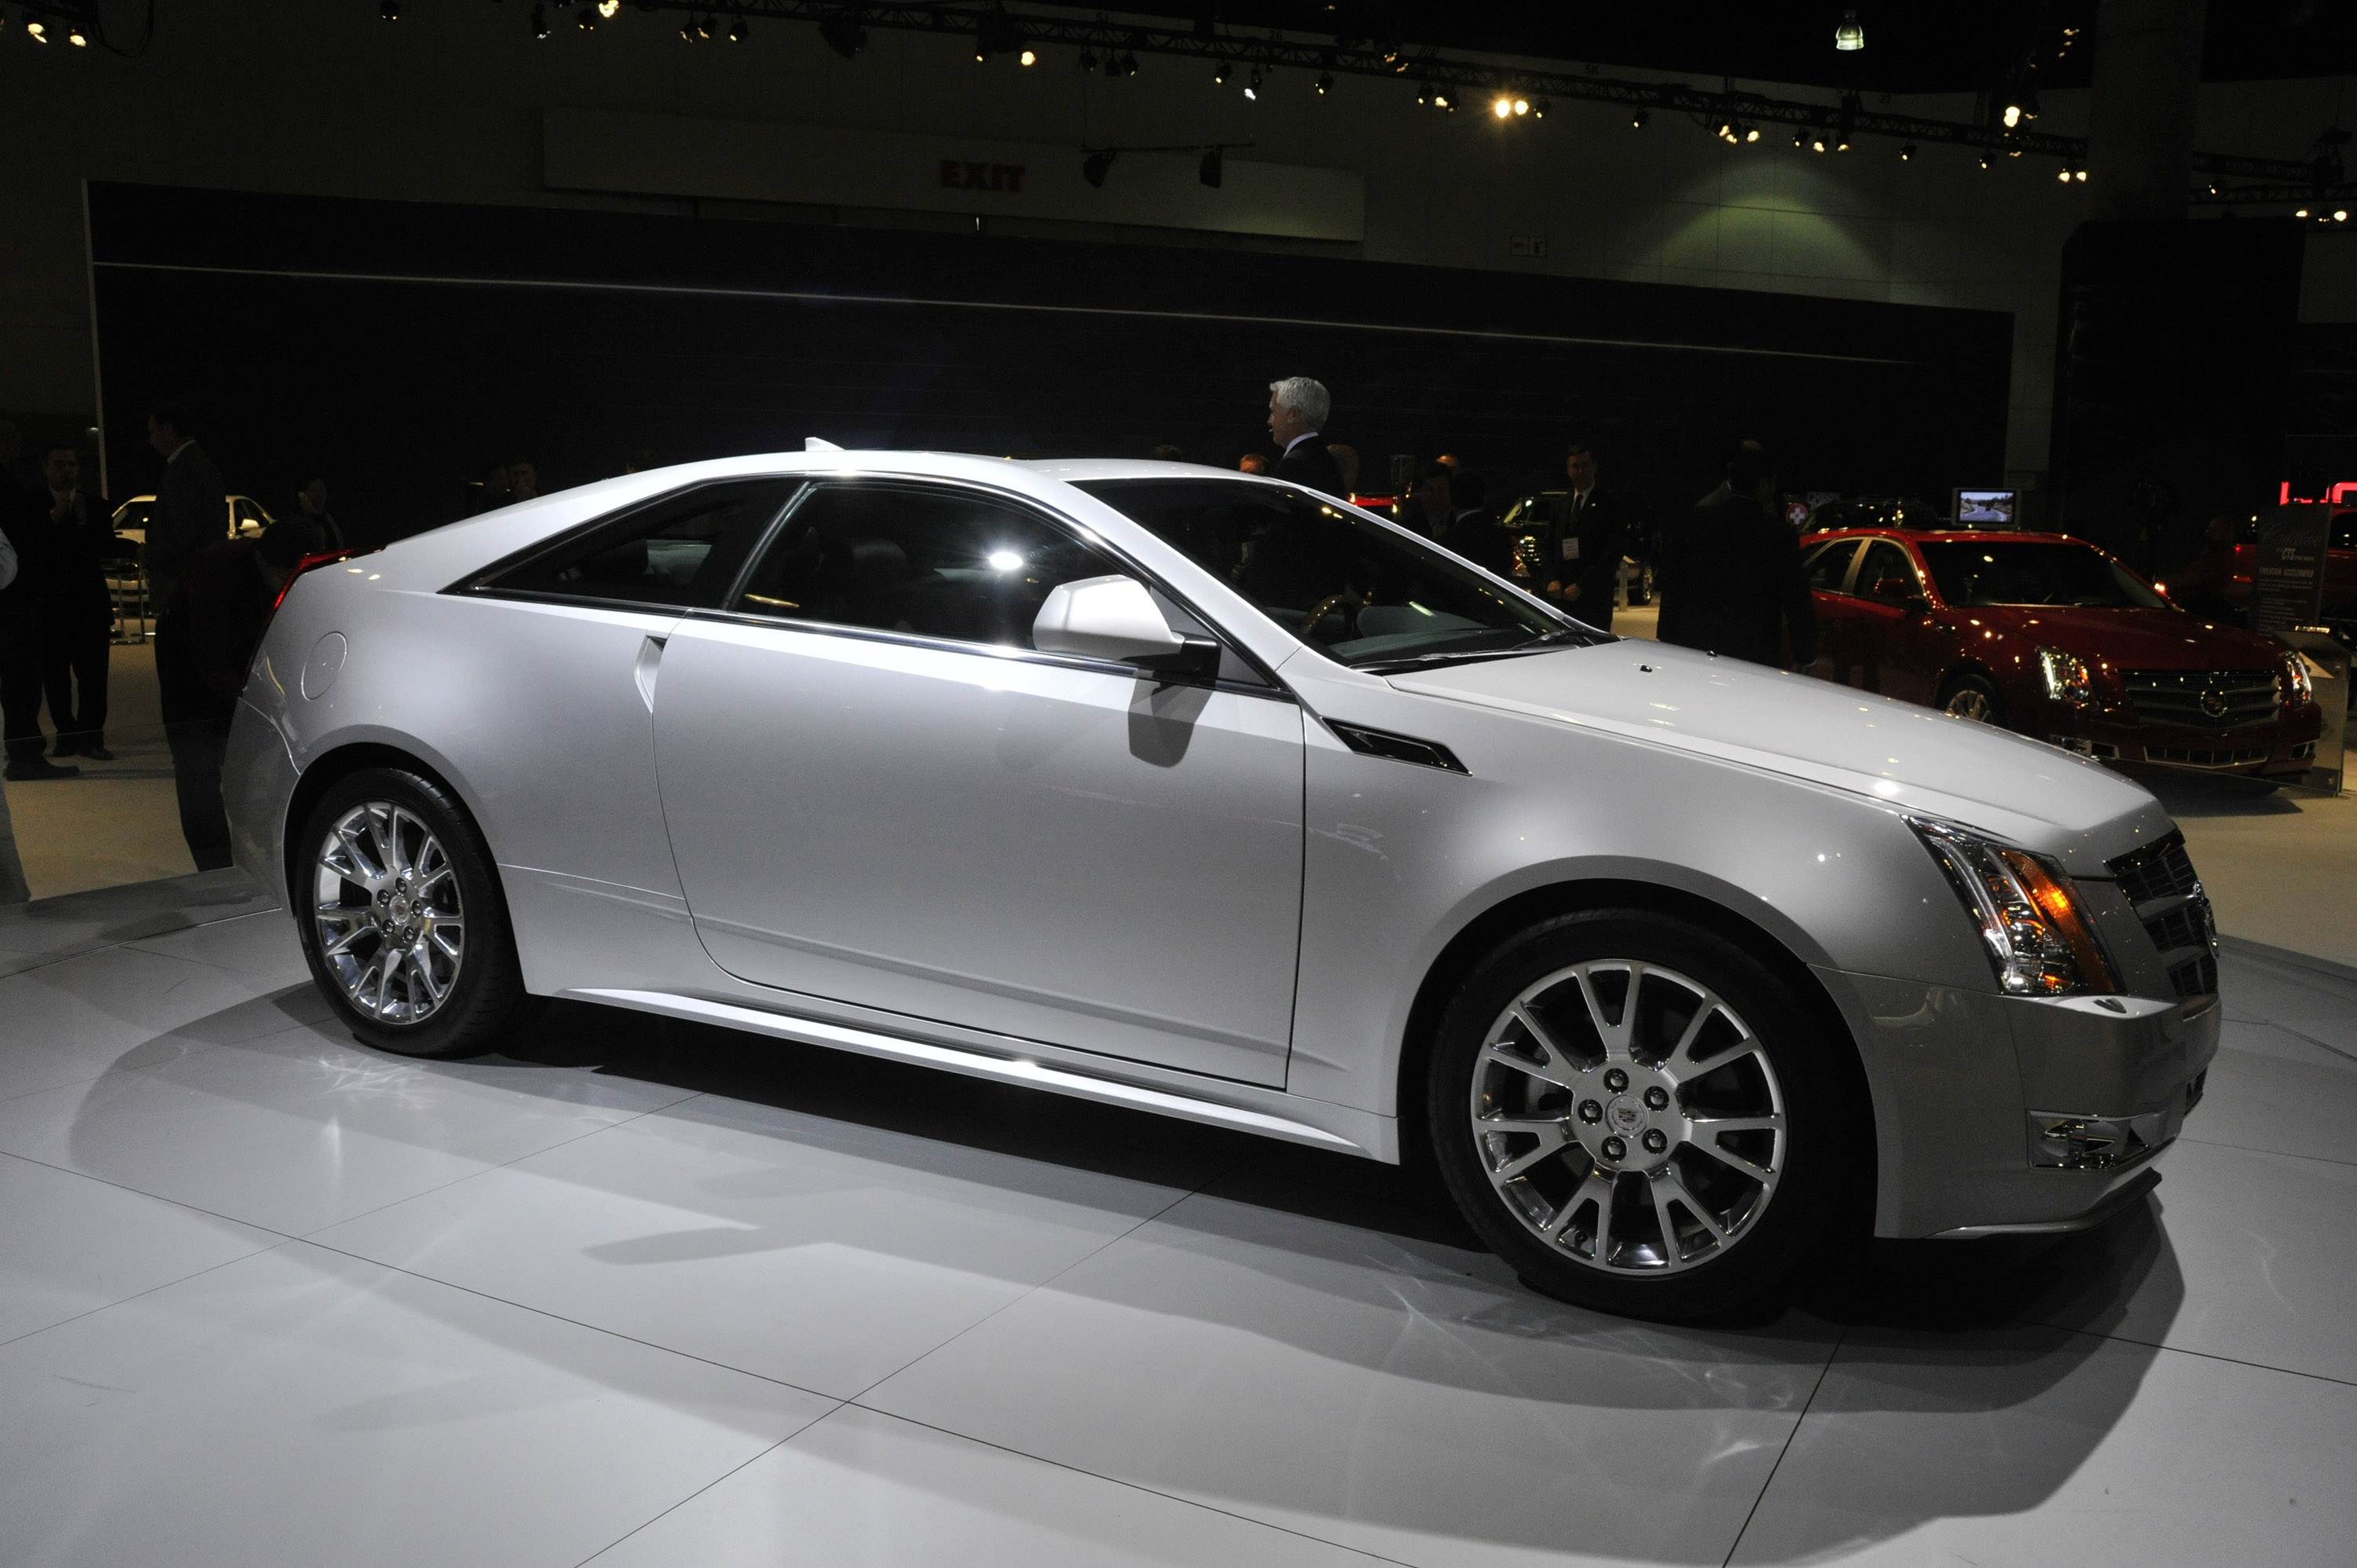 used 2012 cadillac cts review ratings edmunds autos post. Black Bedroom Furniture Sets. Home Design Ideas